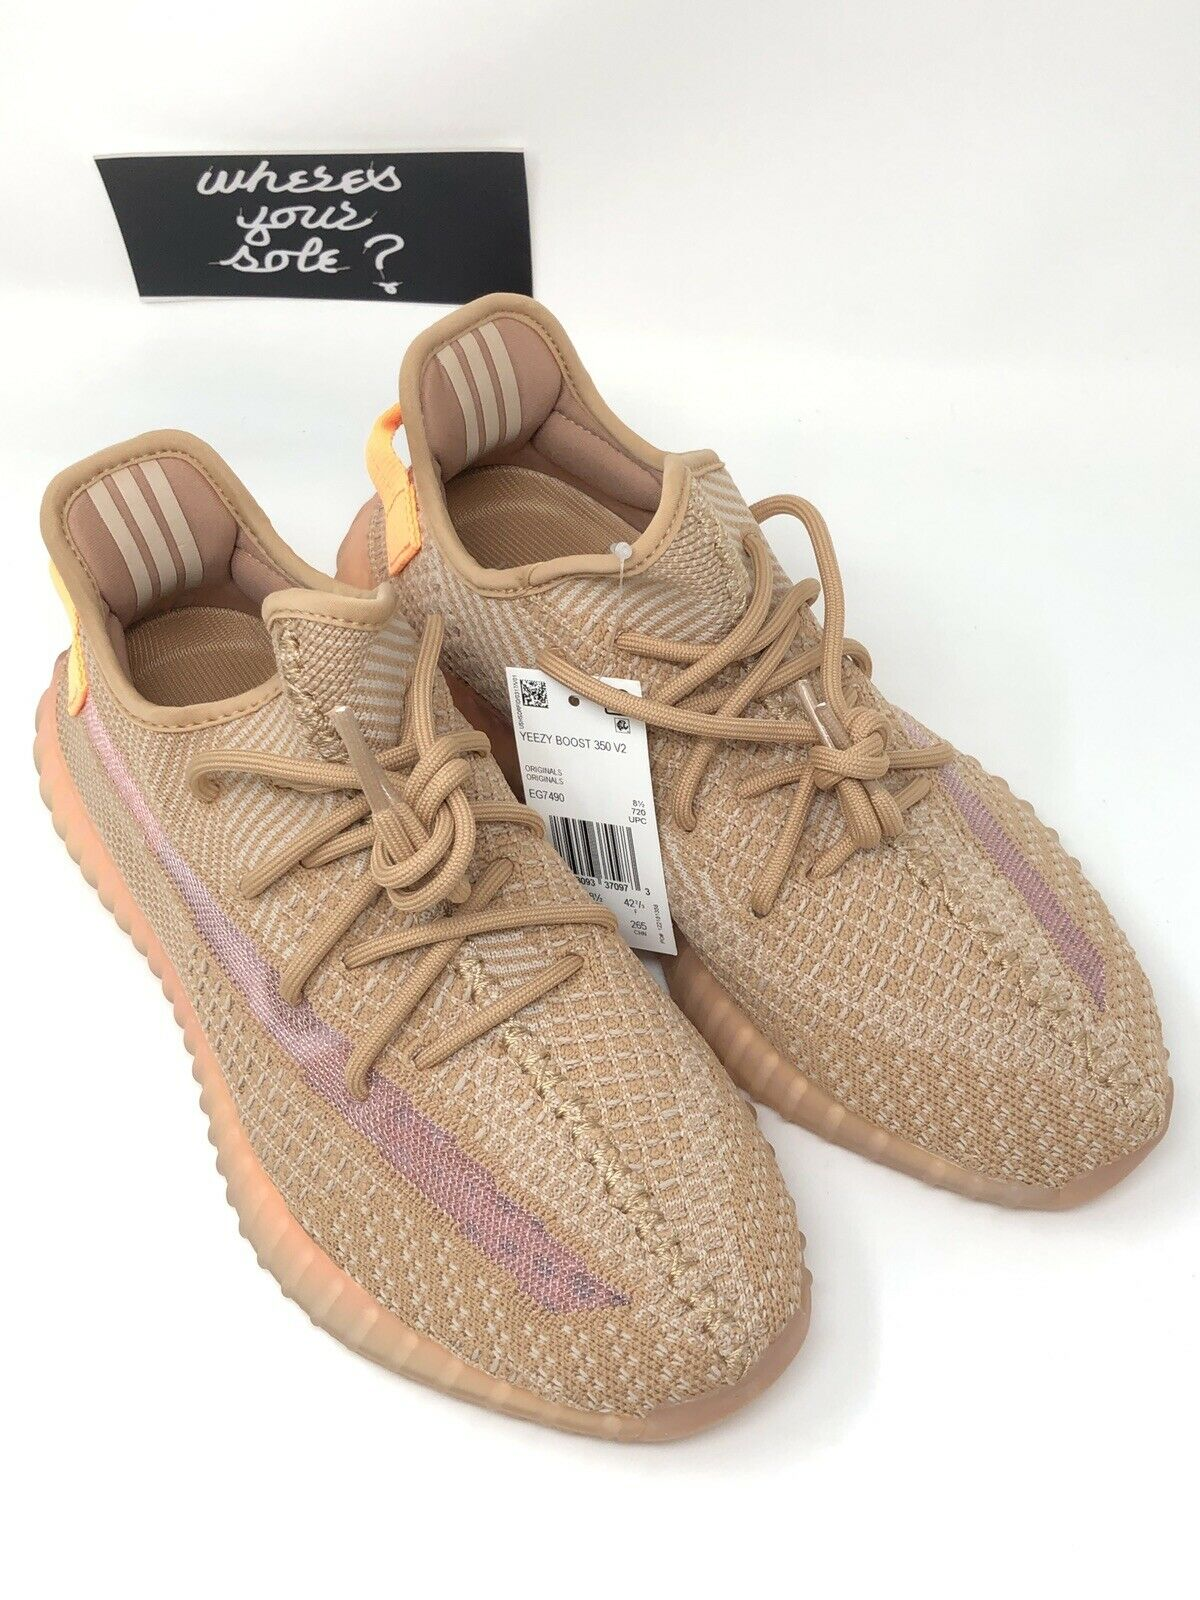 Adidas Yeezy 350 Boost V2 Clay men size 9 EG7490 DS NEW